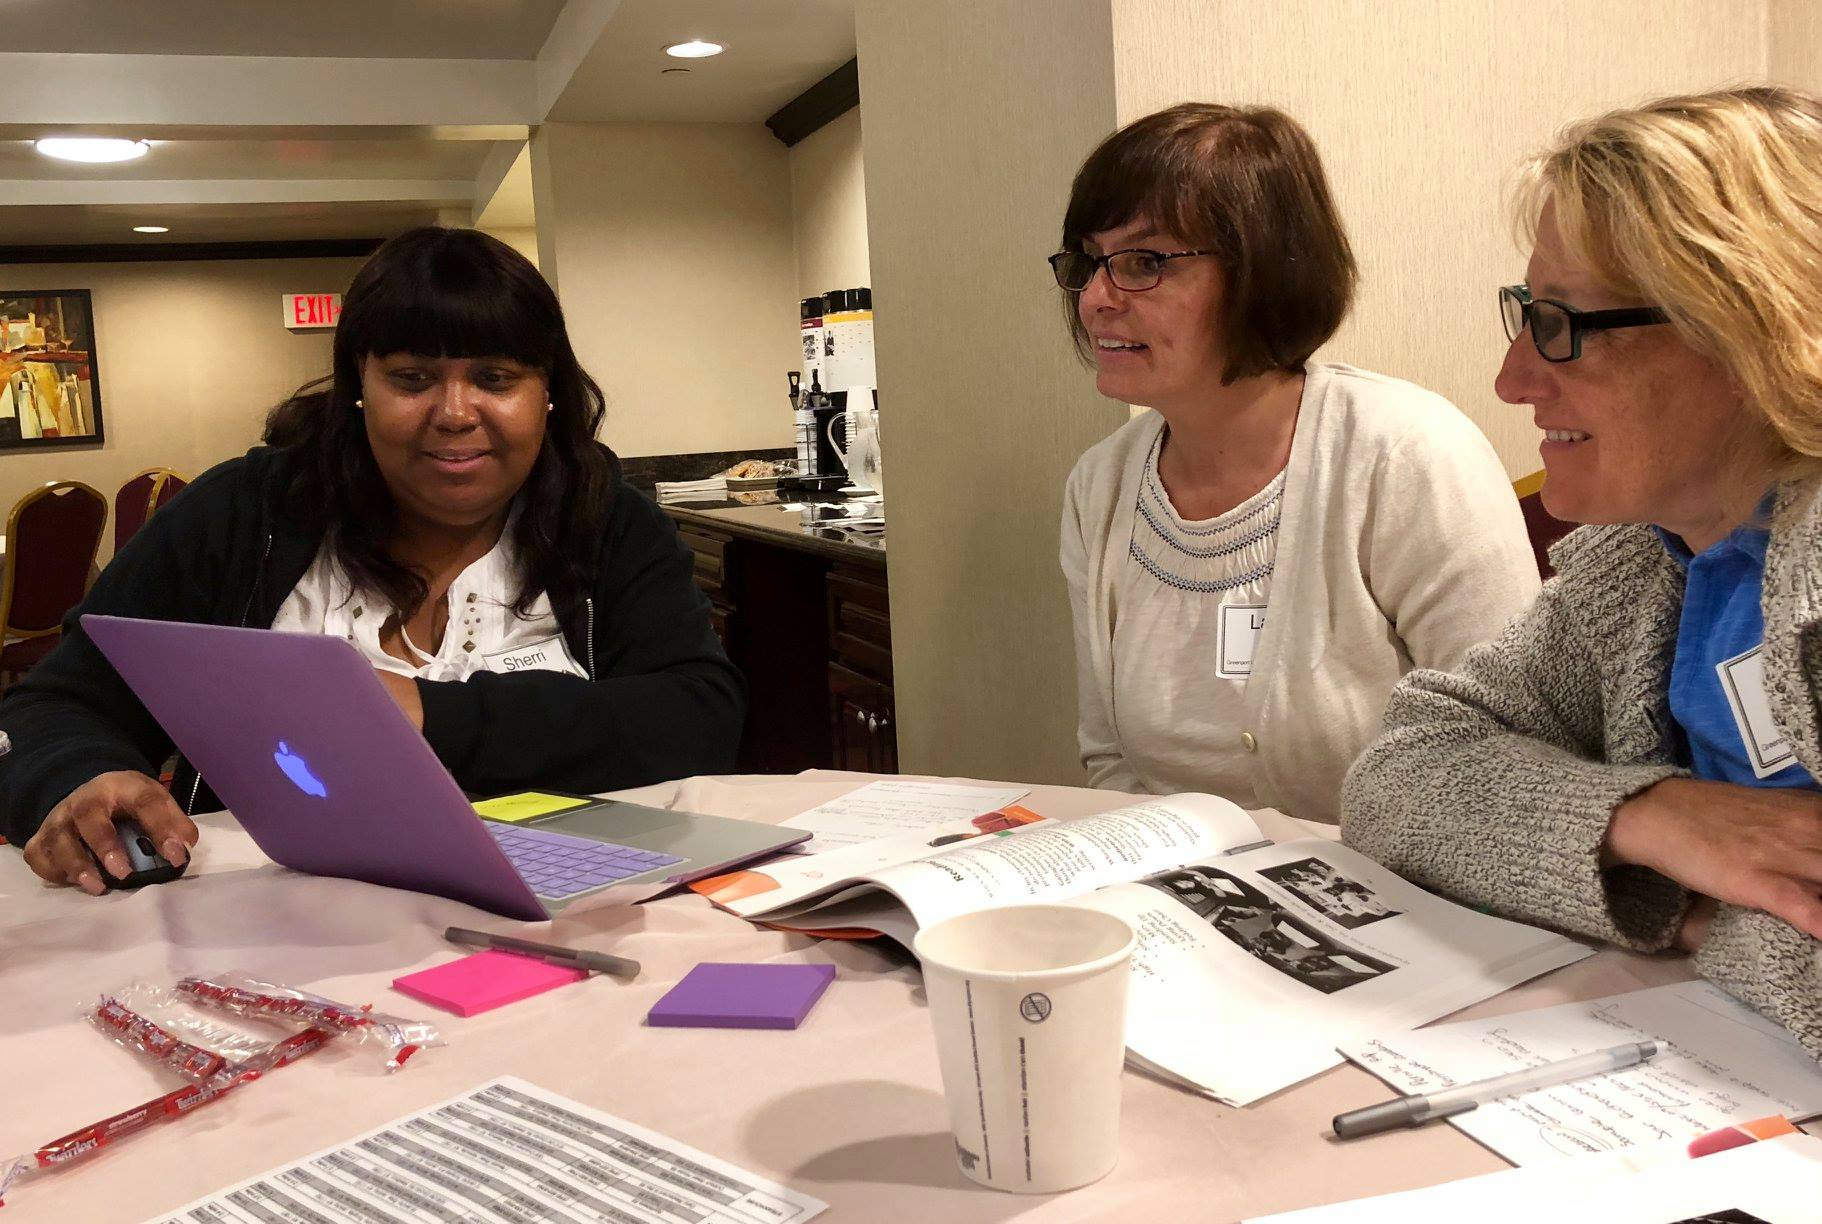 Literacy Workshop Attendees Collaborating